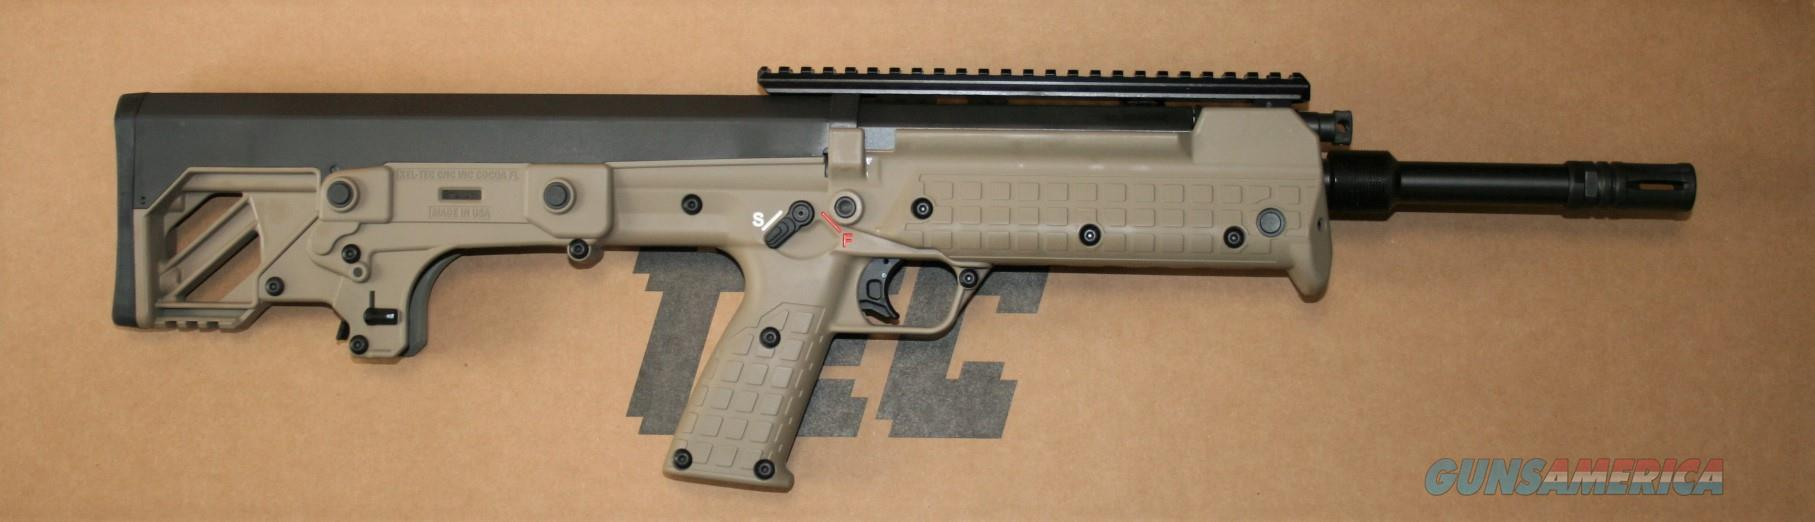 "Kel-Tec RFB18TAN RFB Bullpup .308 18"" Tan  Guns > Rifles > Kel-Tec Rifles"